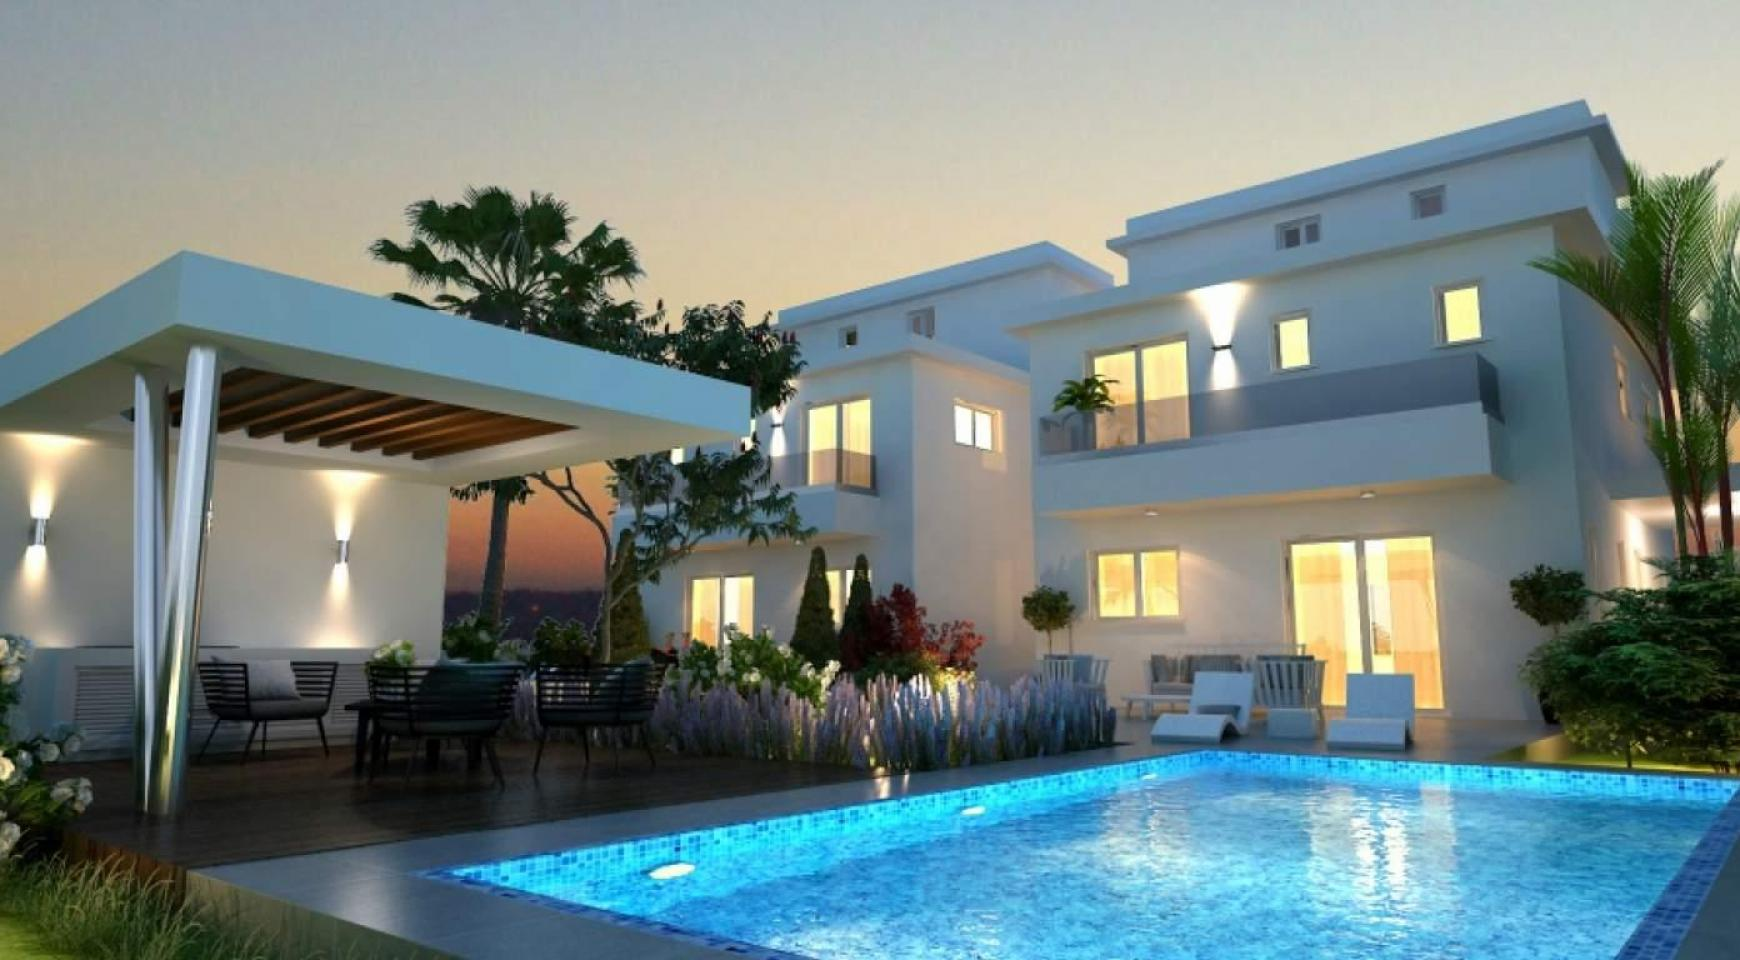 Luxury 4 Bedroom House In Oroklini Area - 1